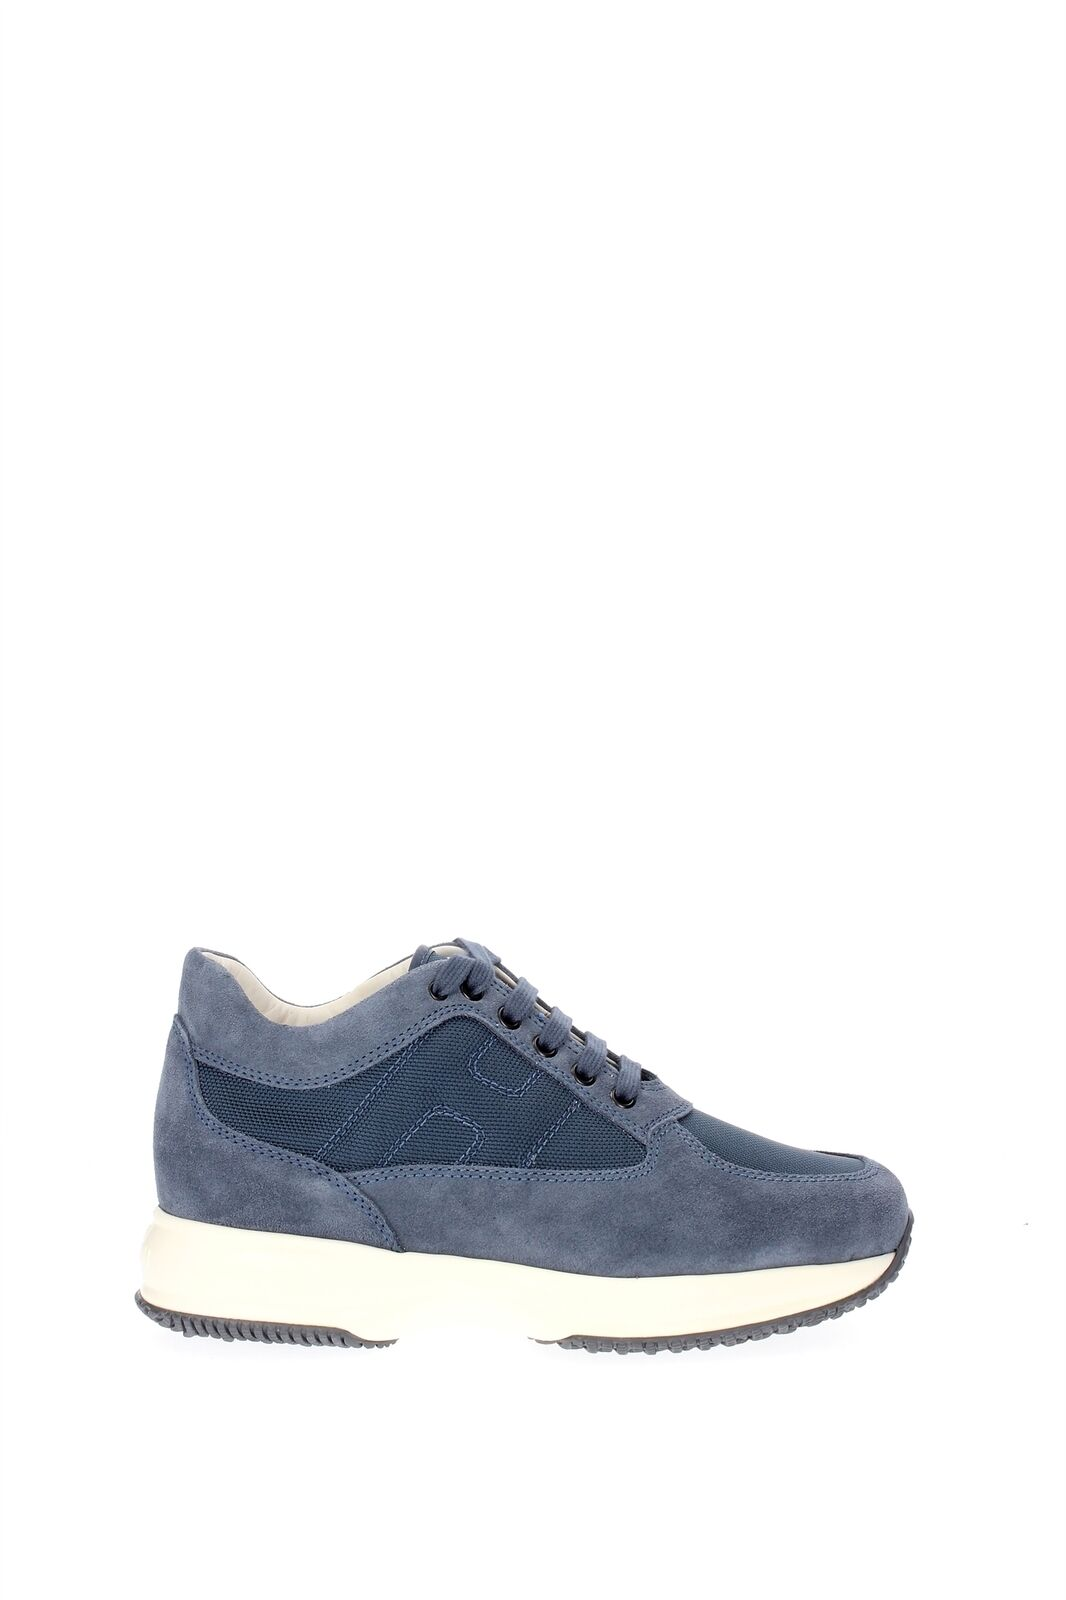 Sneakers Hogan men - Camoscio (HXM00N00E10B2A9998)